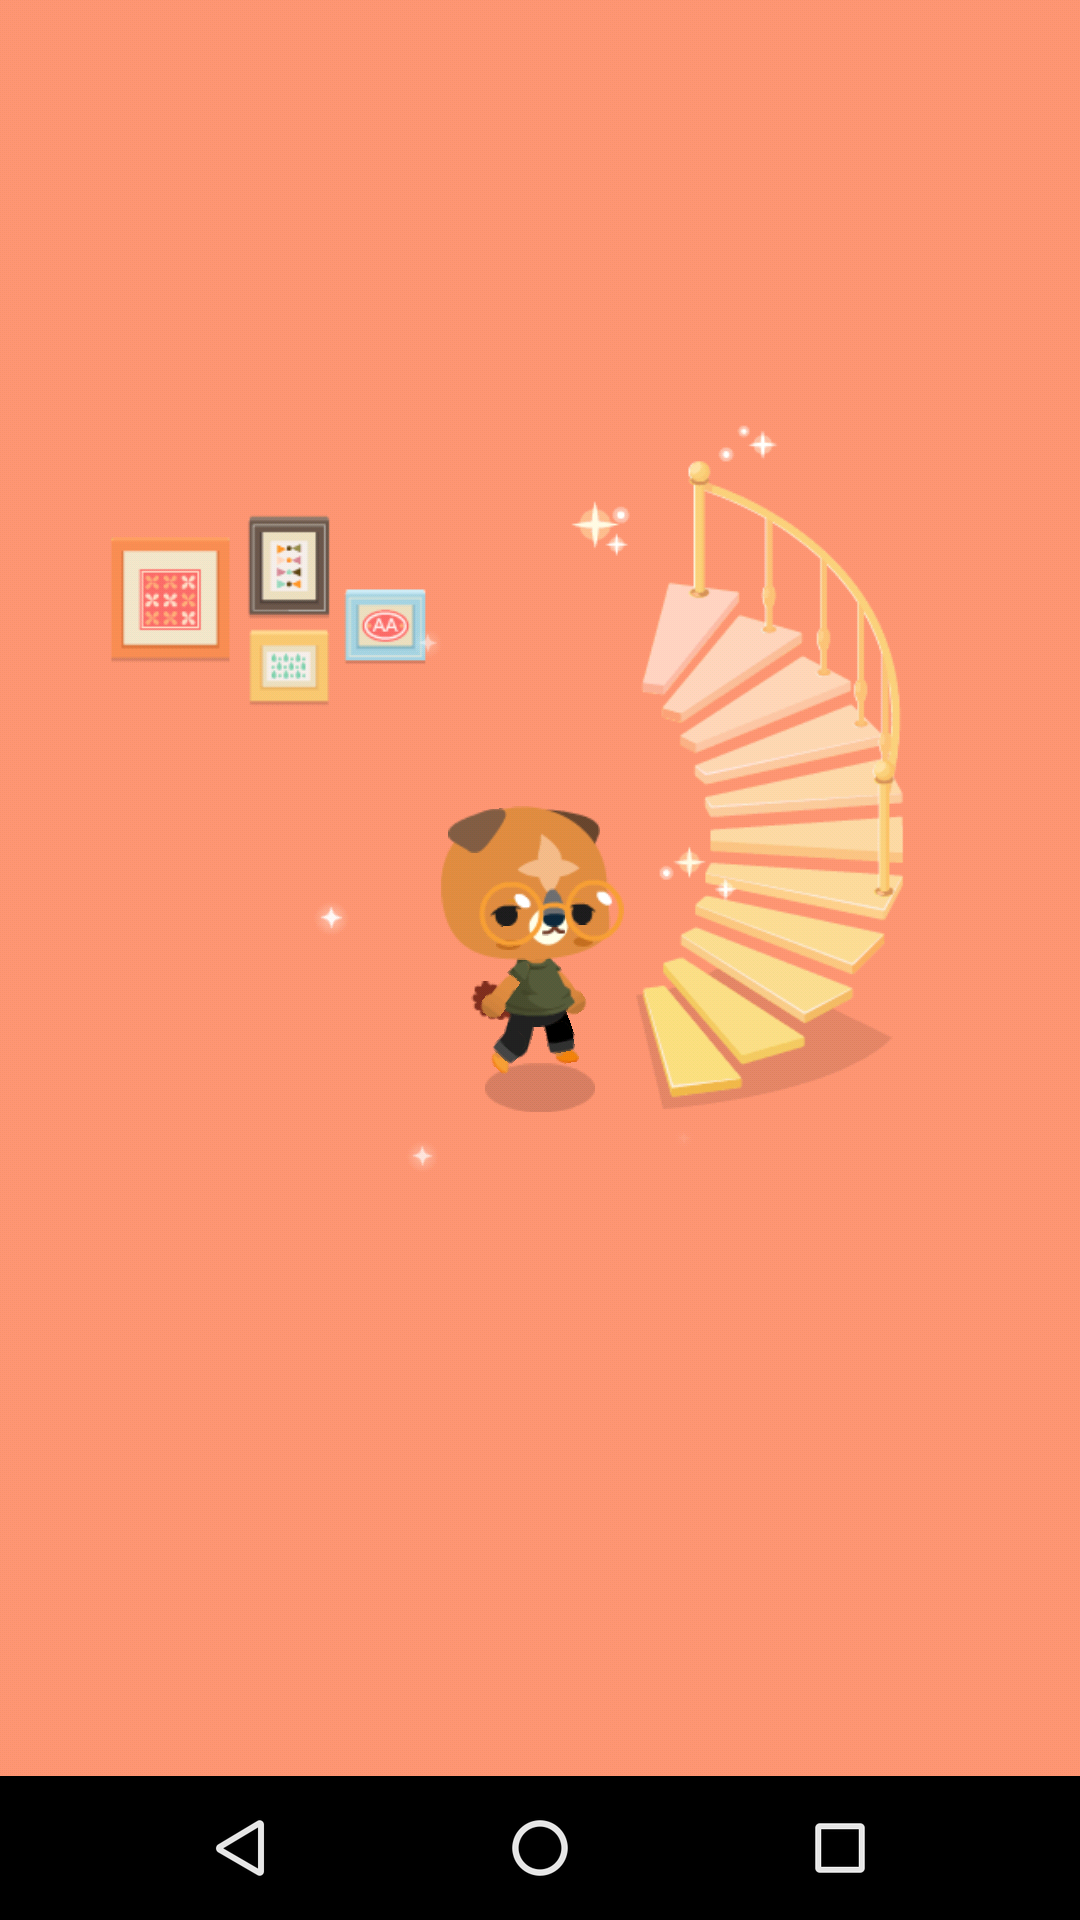 lineplay2.png